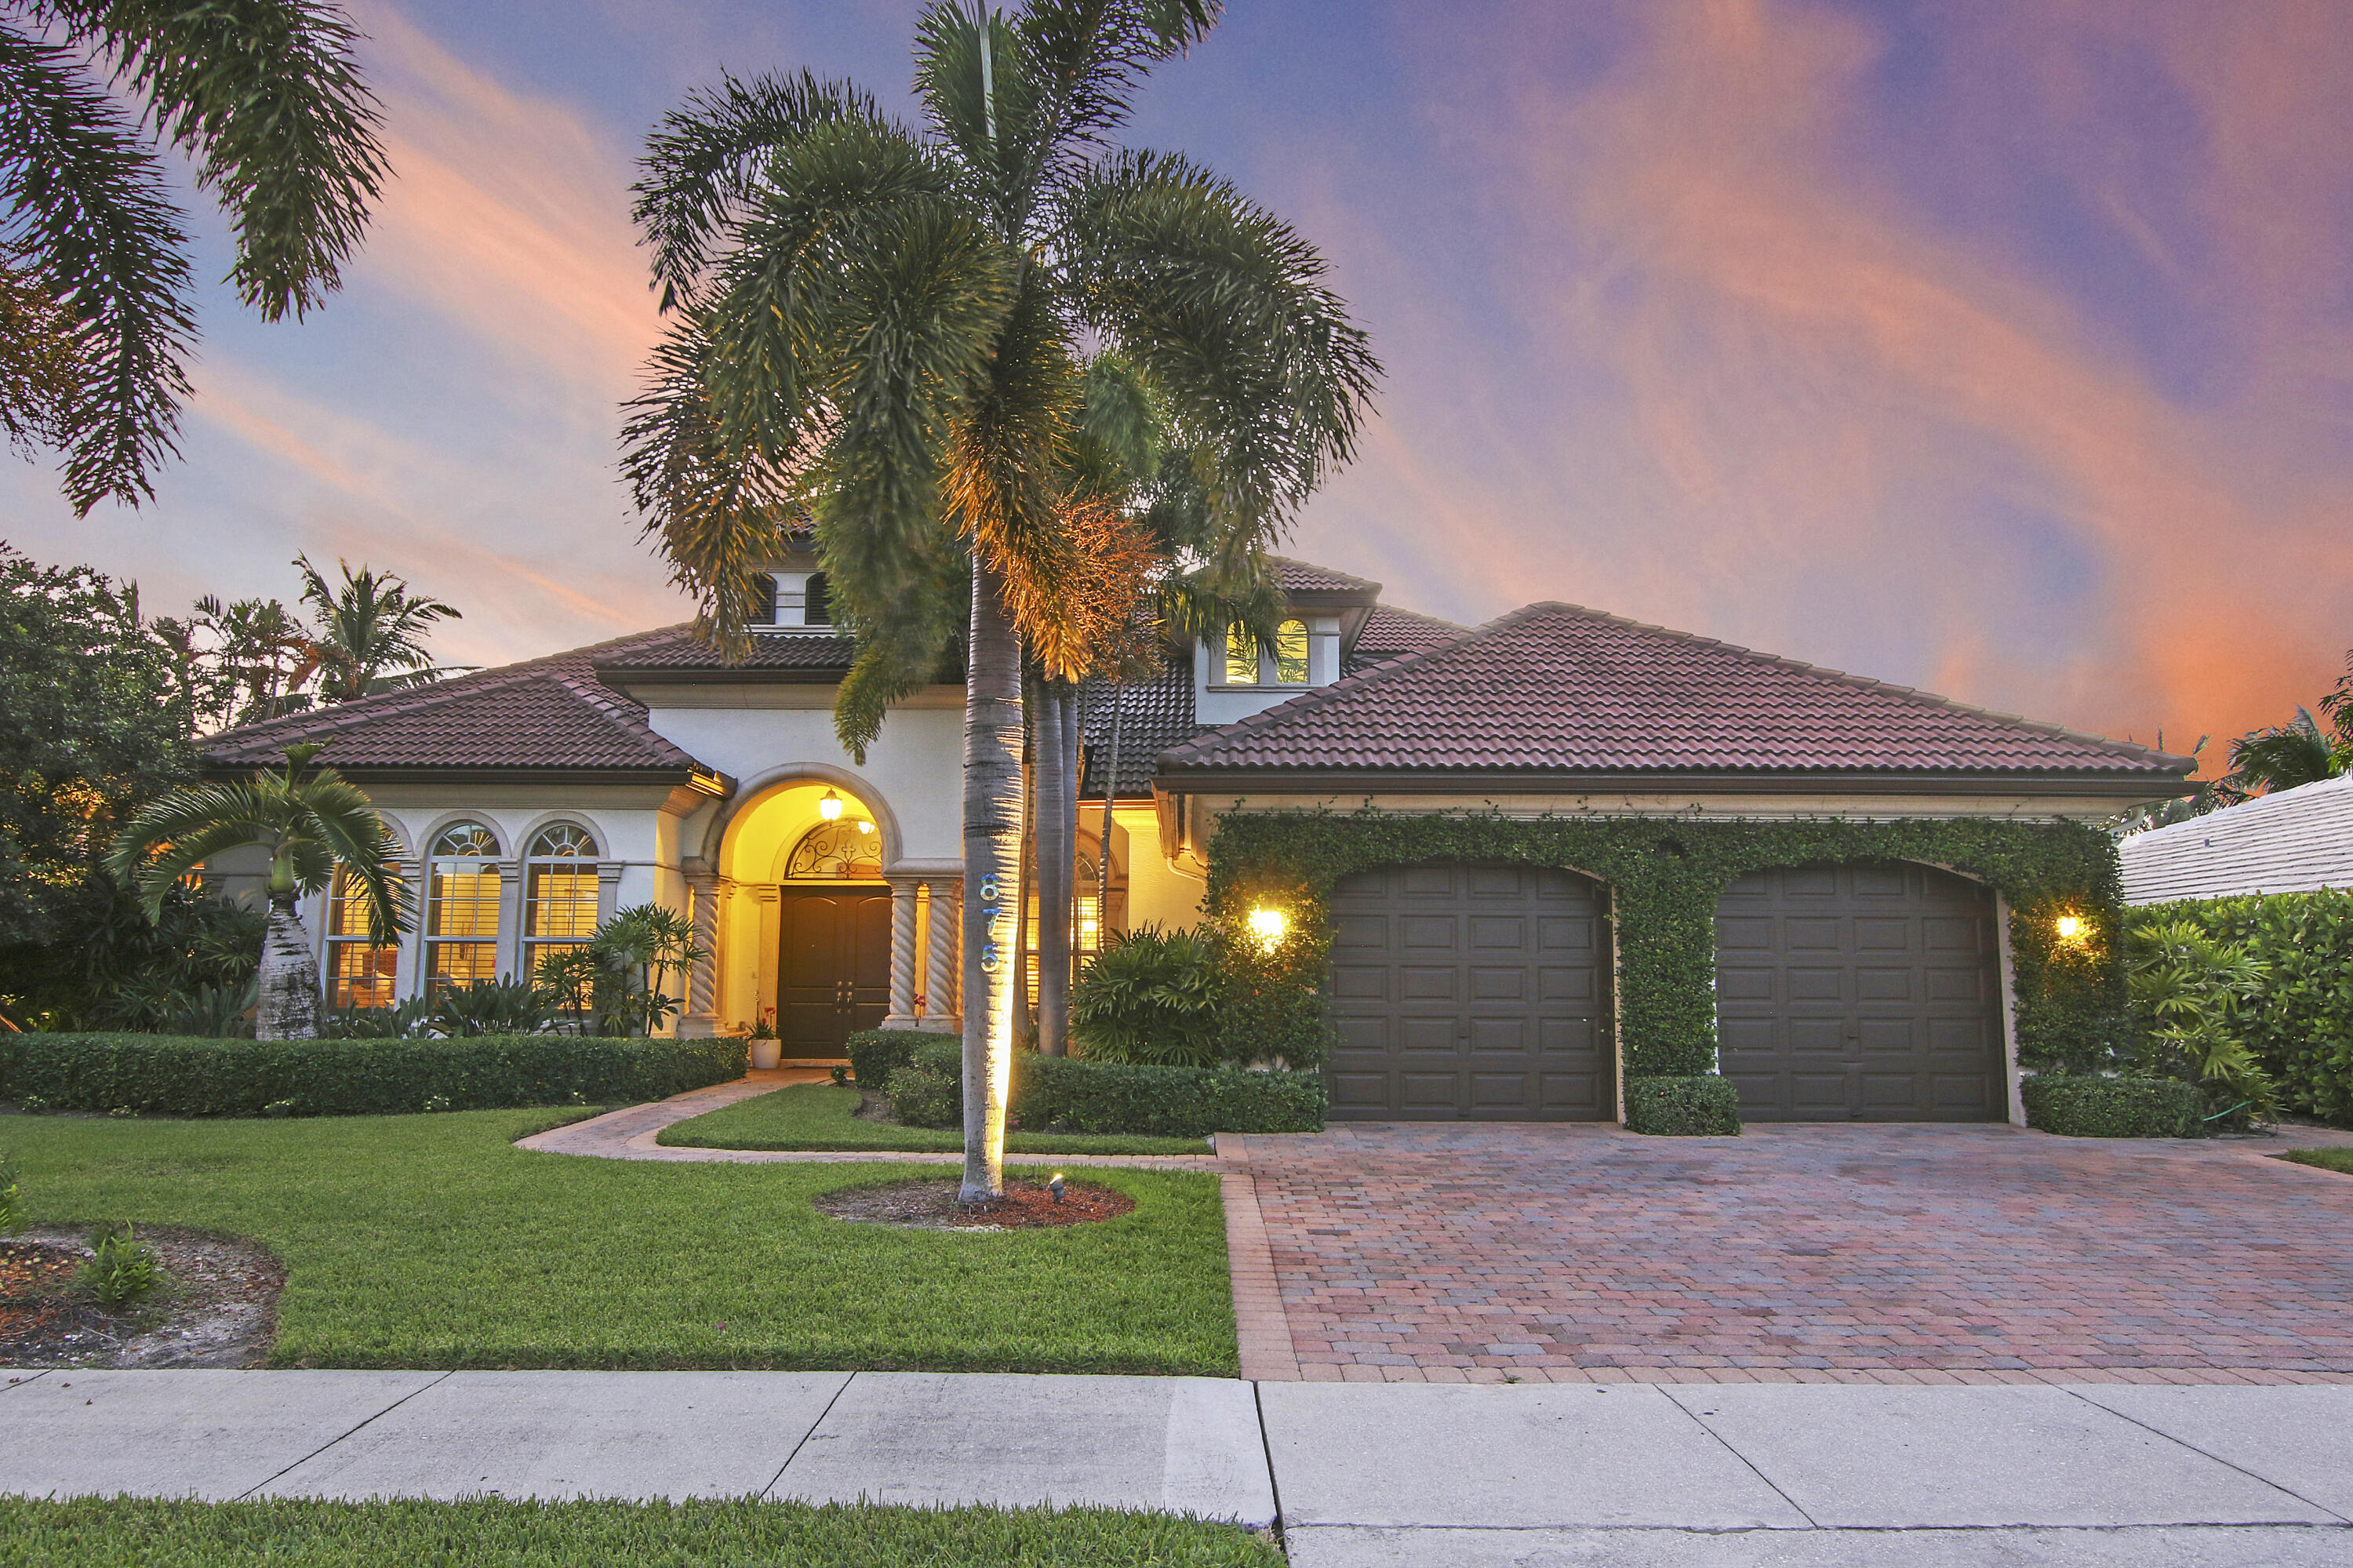 875  Country Club Drive  For Sale 10753641, FL